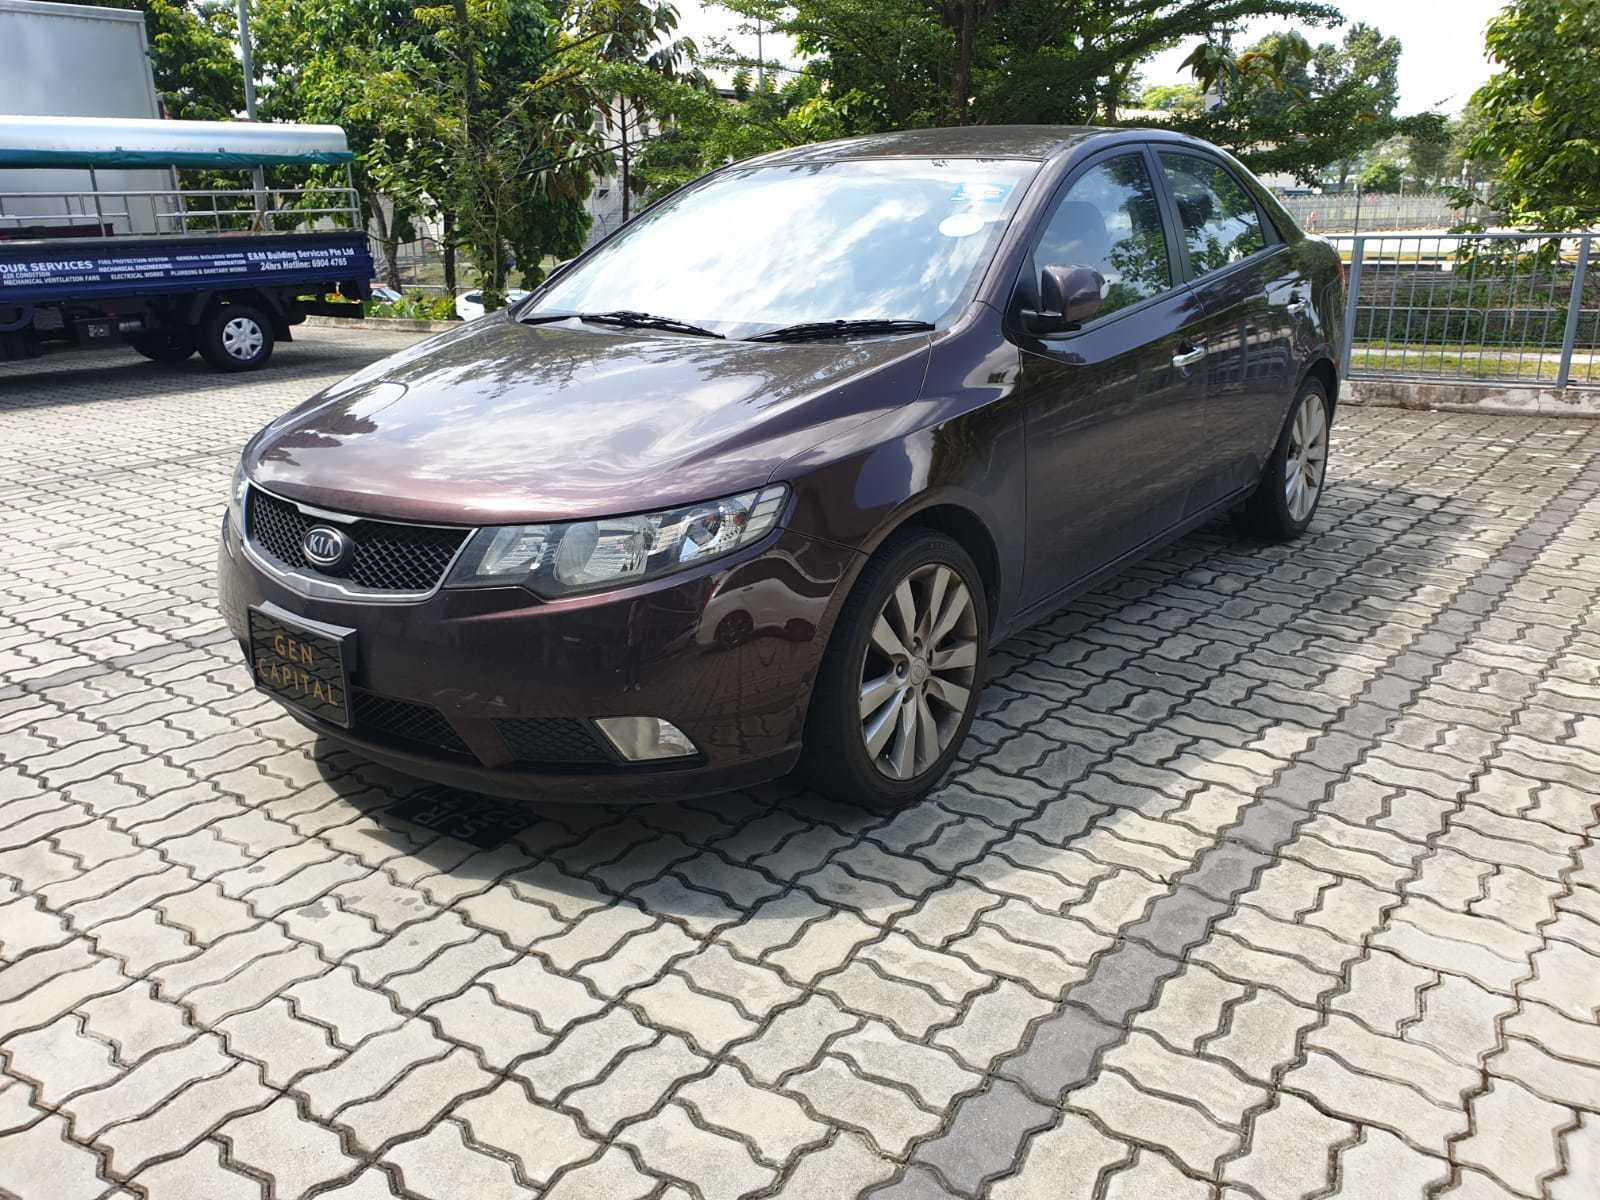 Kia Cerato Forte 1.6A - Lowest rental rates, good condition!